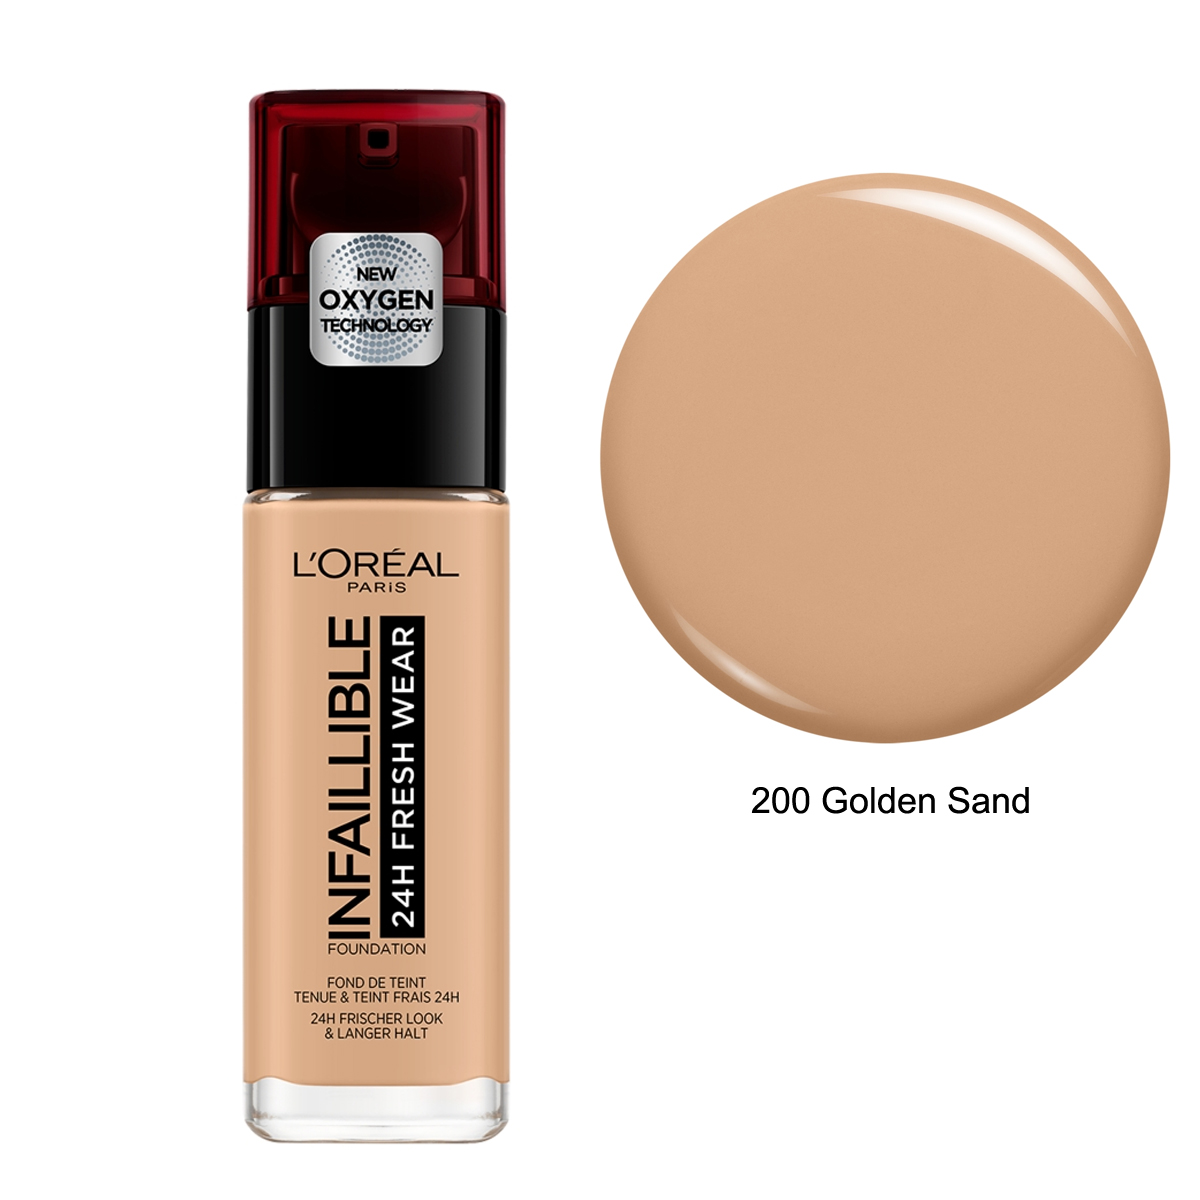 L'Oréal Infaillible 24H Fresh Wear Foundation Uzun Süre Kalıcı Fondöten 200 Golden Sand